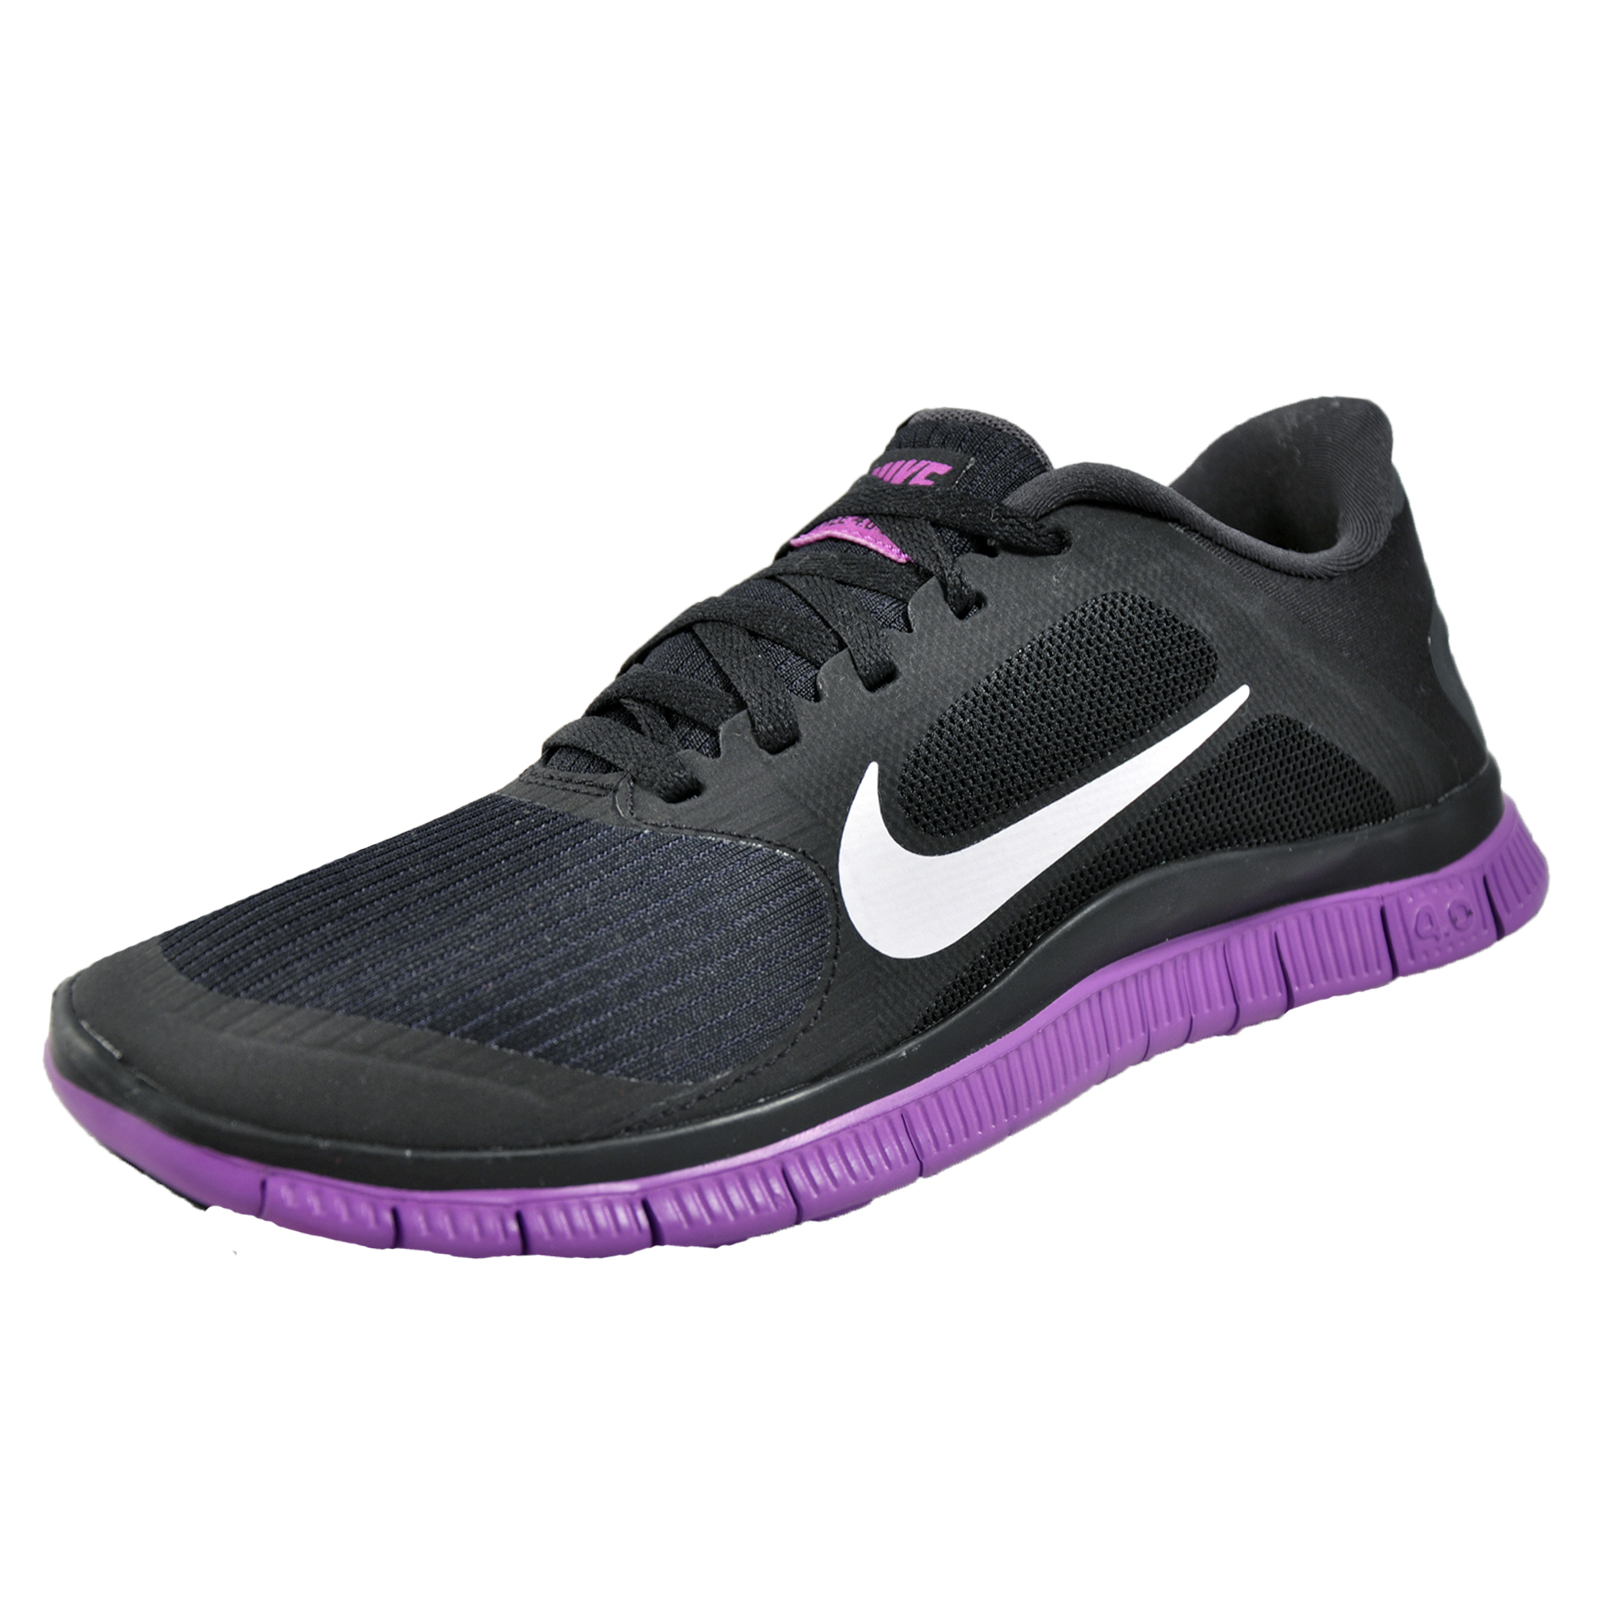 Nike Free 4 0 V3 Womens Running Shoes Fitness Gym Trainers